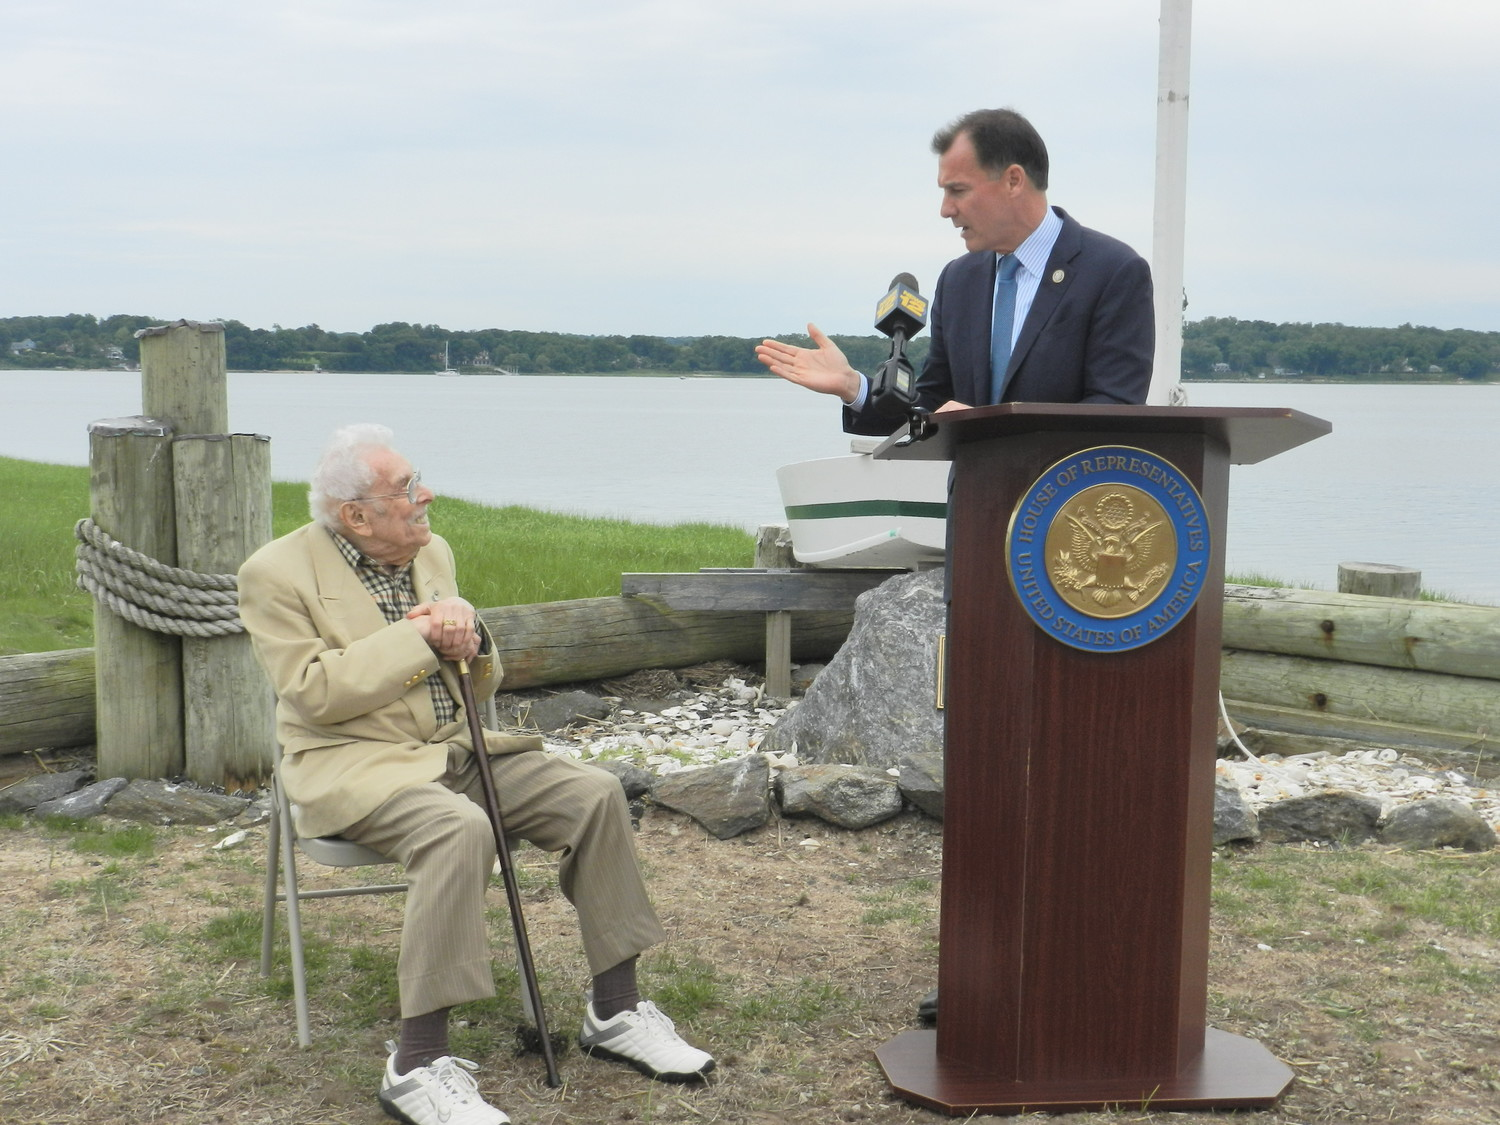 U.S. Rep Tom Suozzi held a news conference last Sunday in Bayville to announce his proposal to rename the Oyster Bay National Wildlife Refuge in honor of former U.S. Rep. Lester Wolff, left.